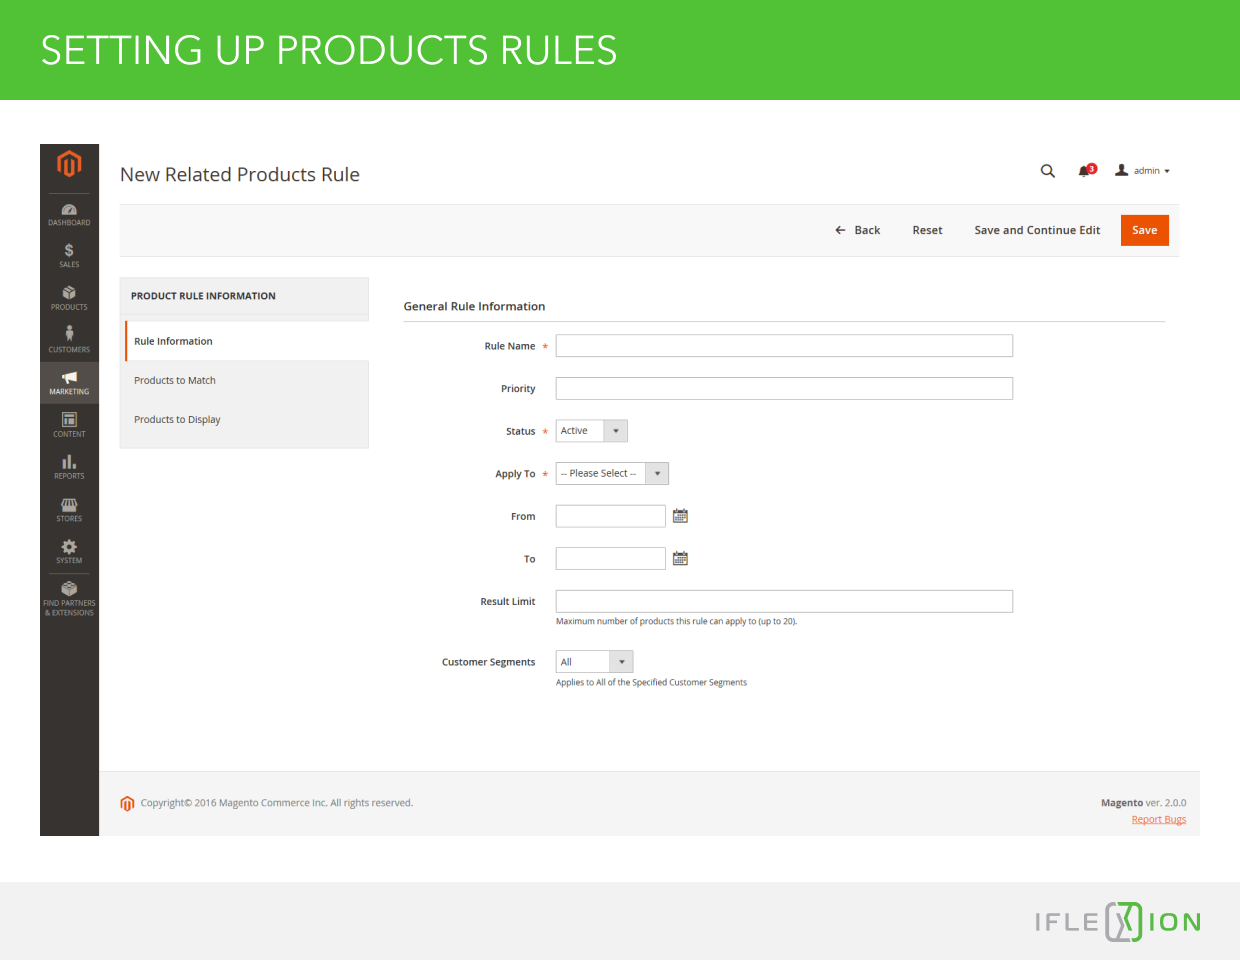 Setting up Products Rules